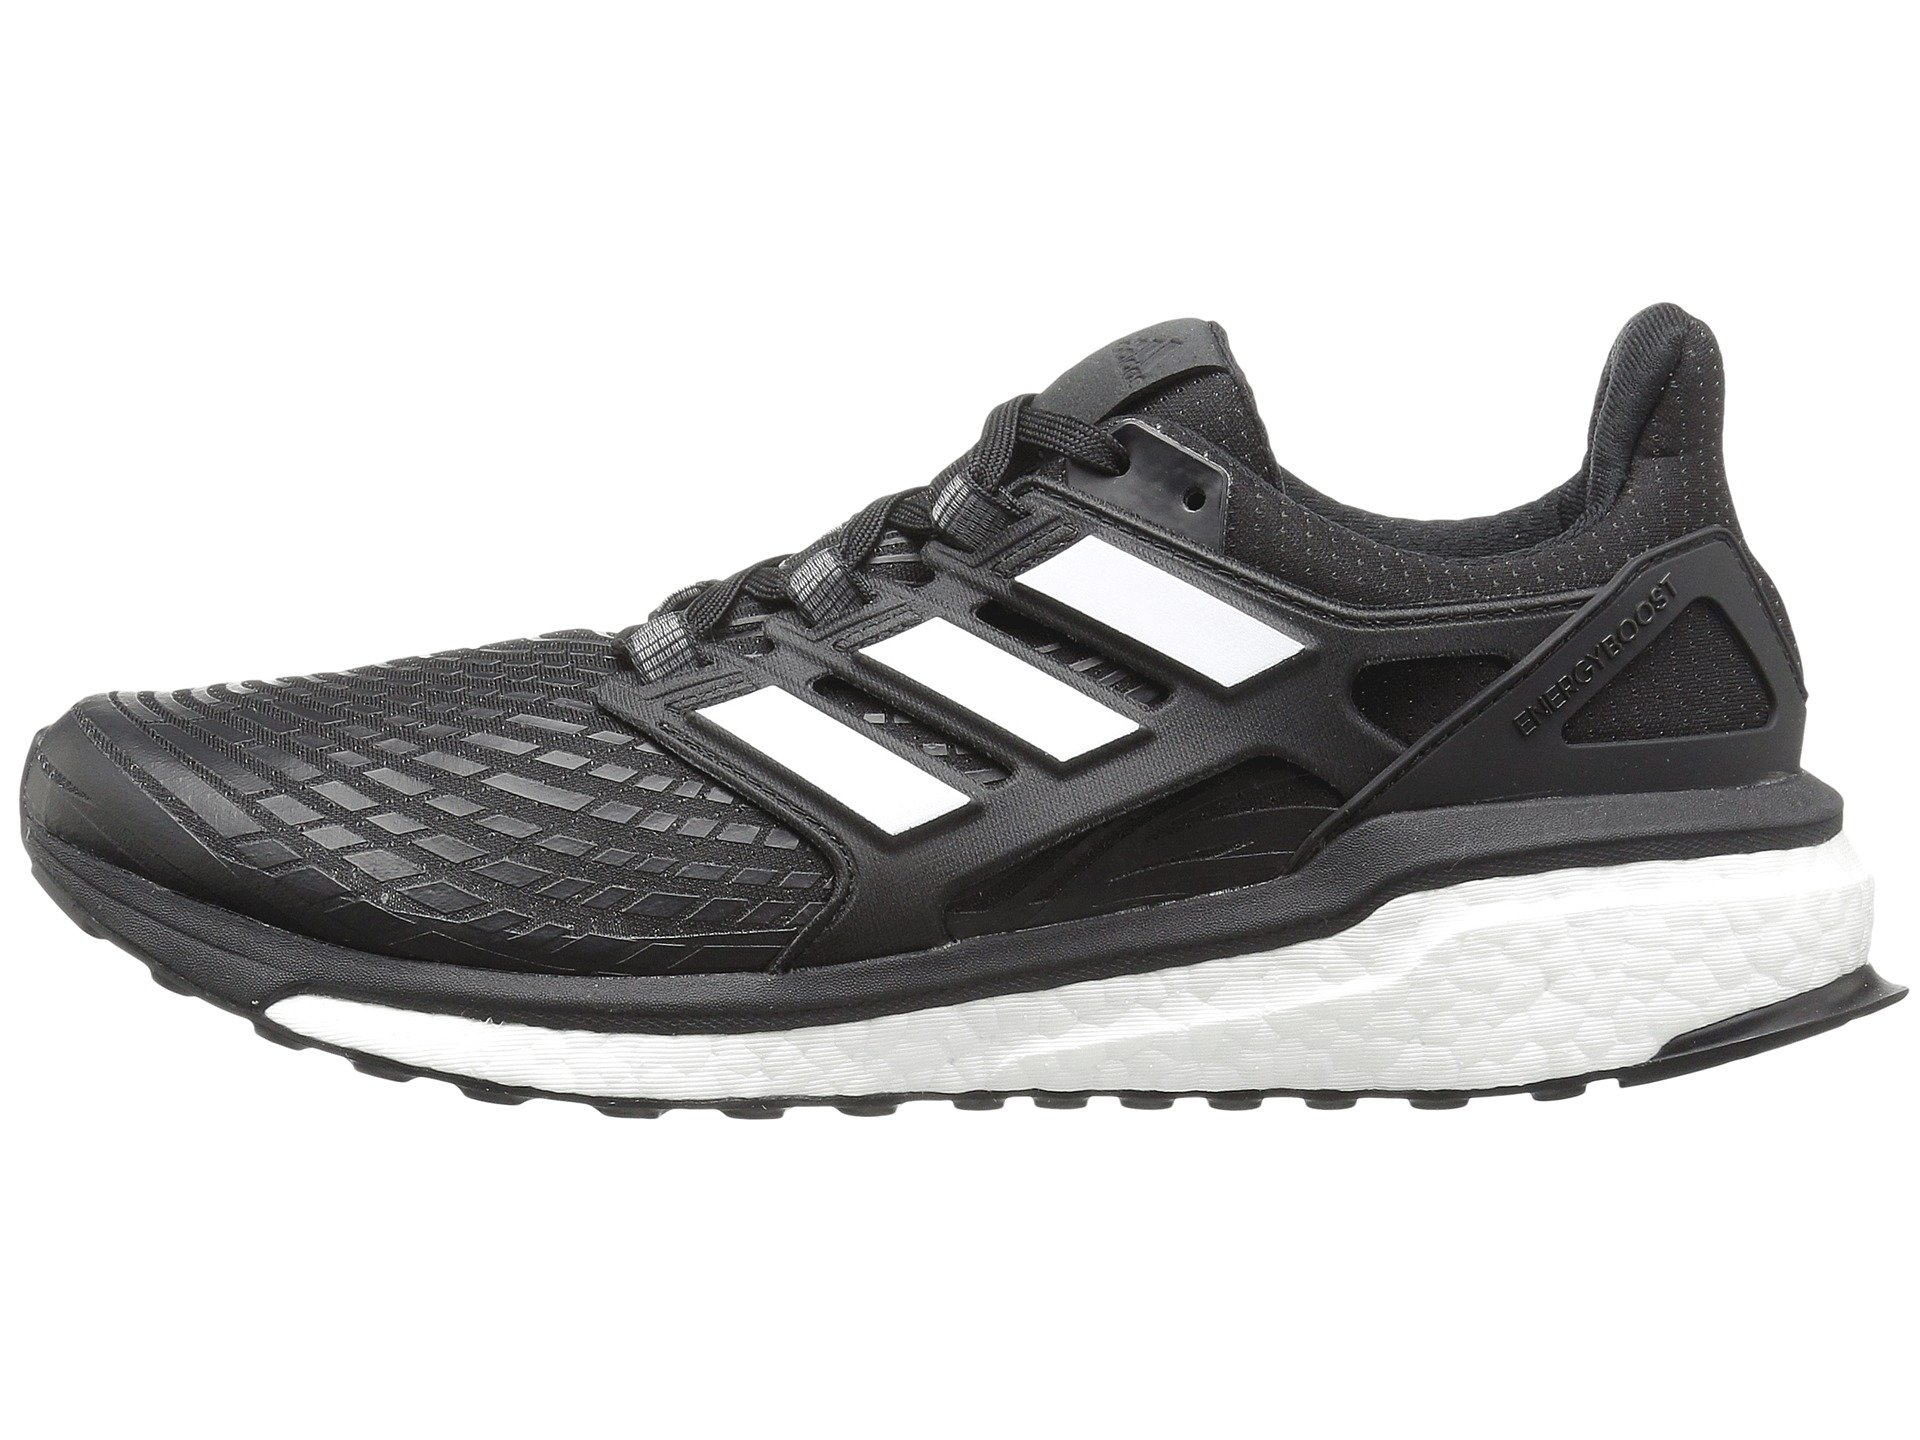 new styles 12394 7075a Best Adidas Running Shoes  Adidas Shoe Reviews 2018